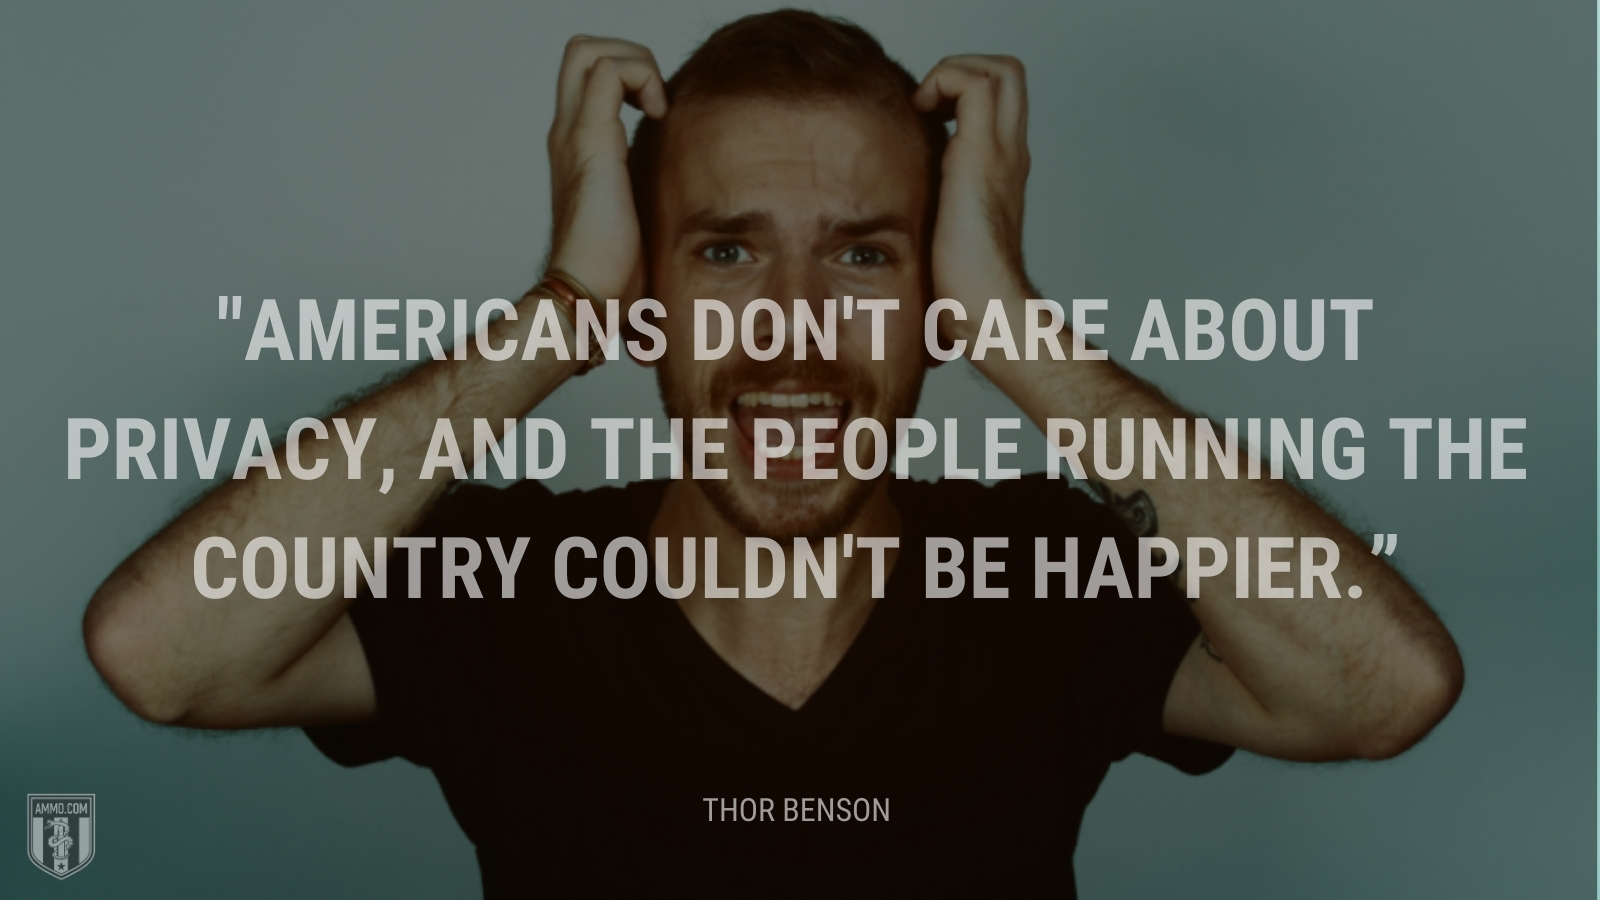 """""""Americans don't care about privacy, and the people running the country couldn't be happier."""" - Thor Benson"""